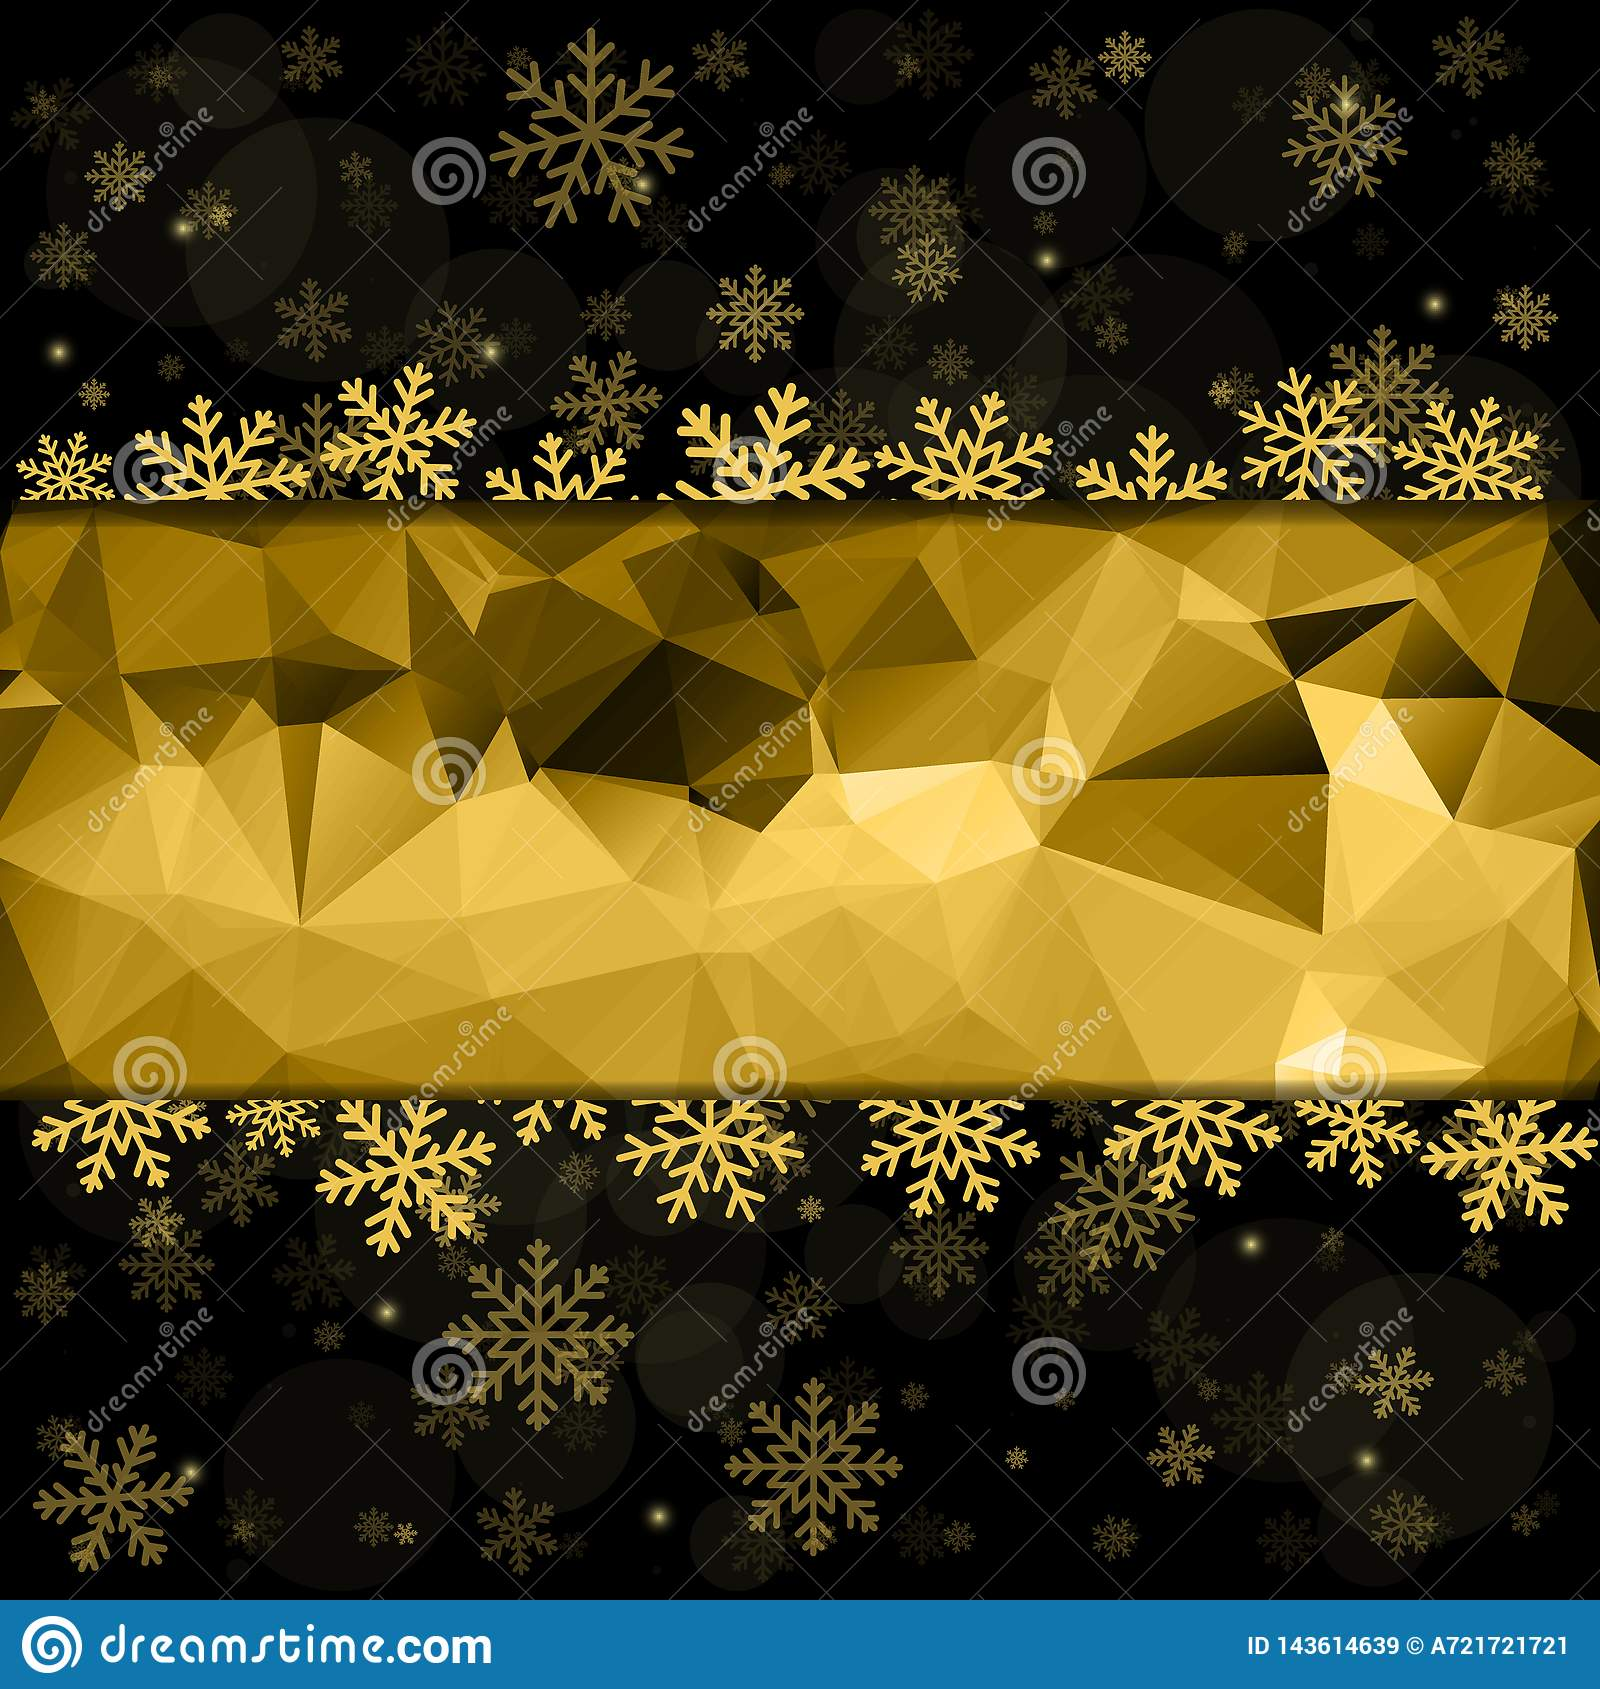 Merry Christmas And Happy New Year 2020, 2021 Greeting